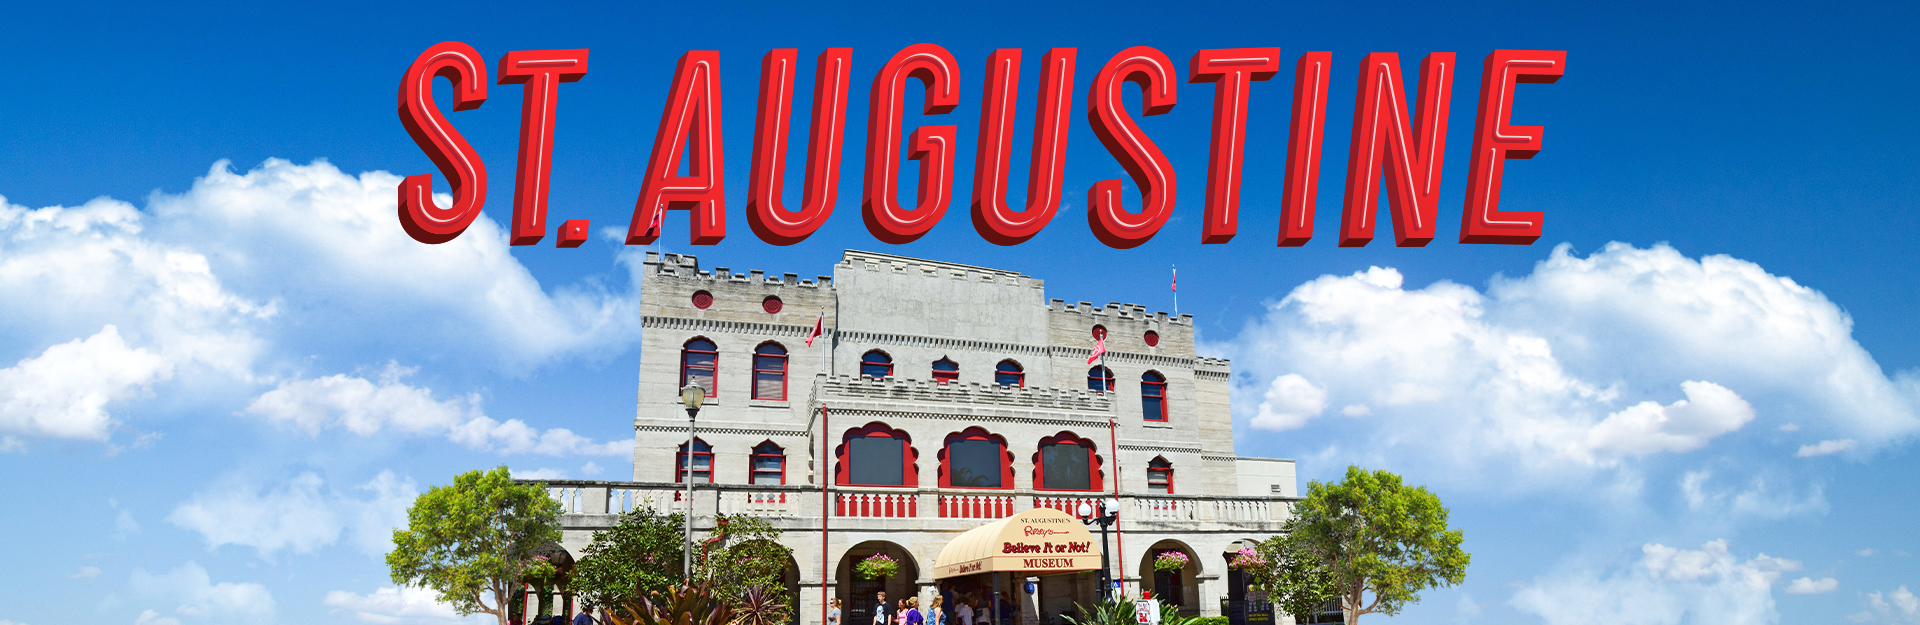 Ripley's Believe It or Not! St Augustine image